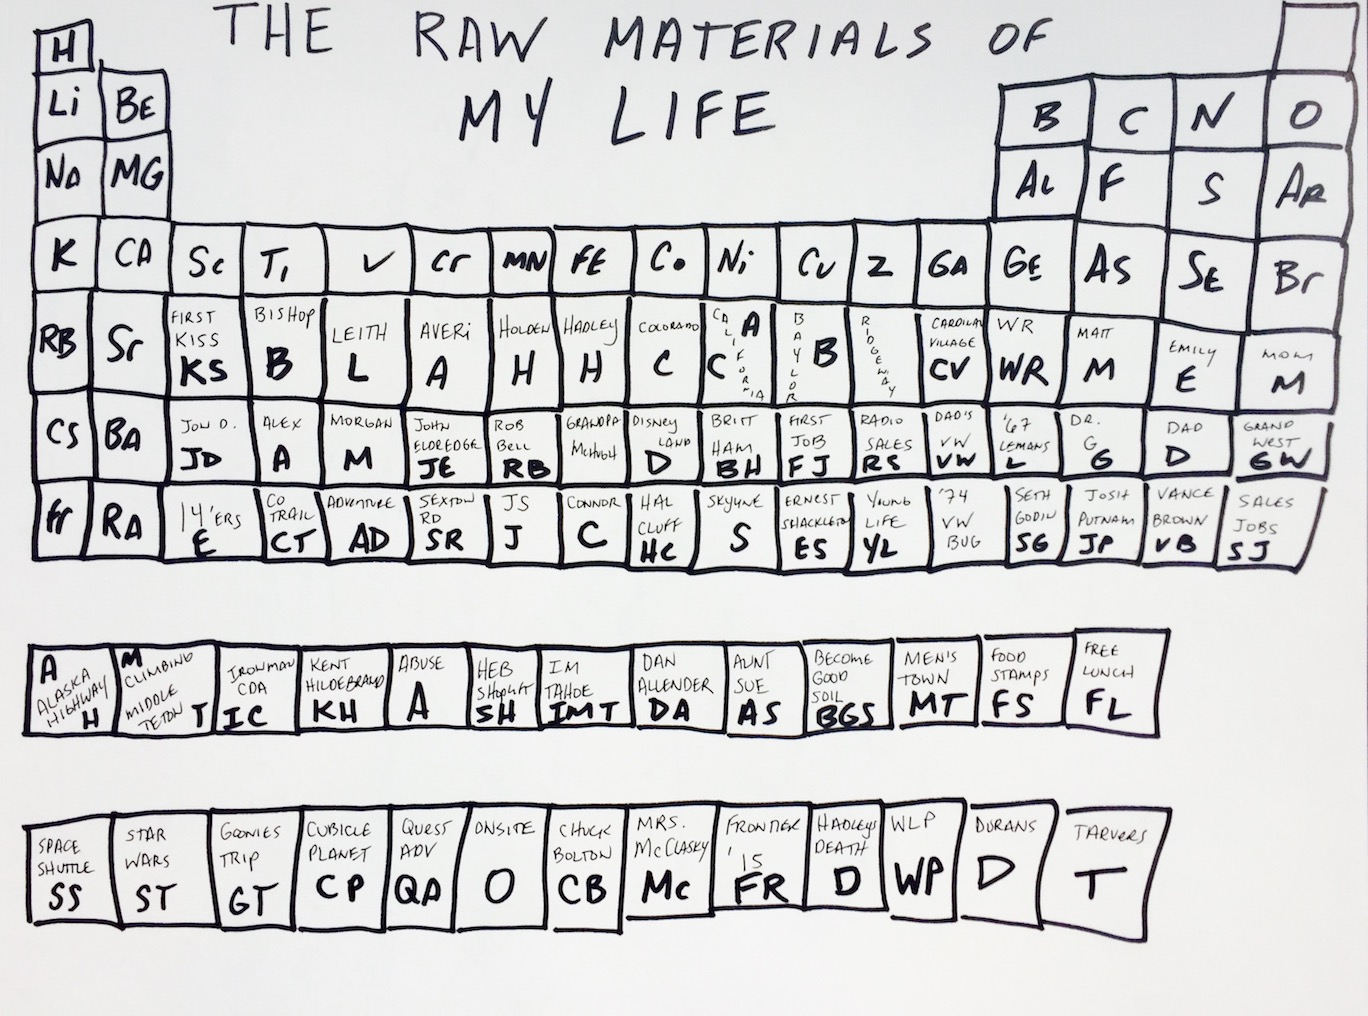 K periodic table image collections periodic table images k periodic table gallery periodic table images the periodic table the raw materials of your life gamestrikefo Images